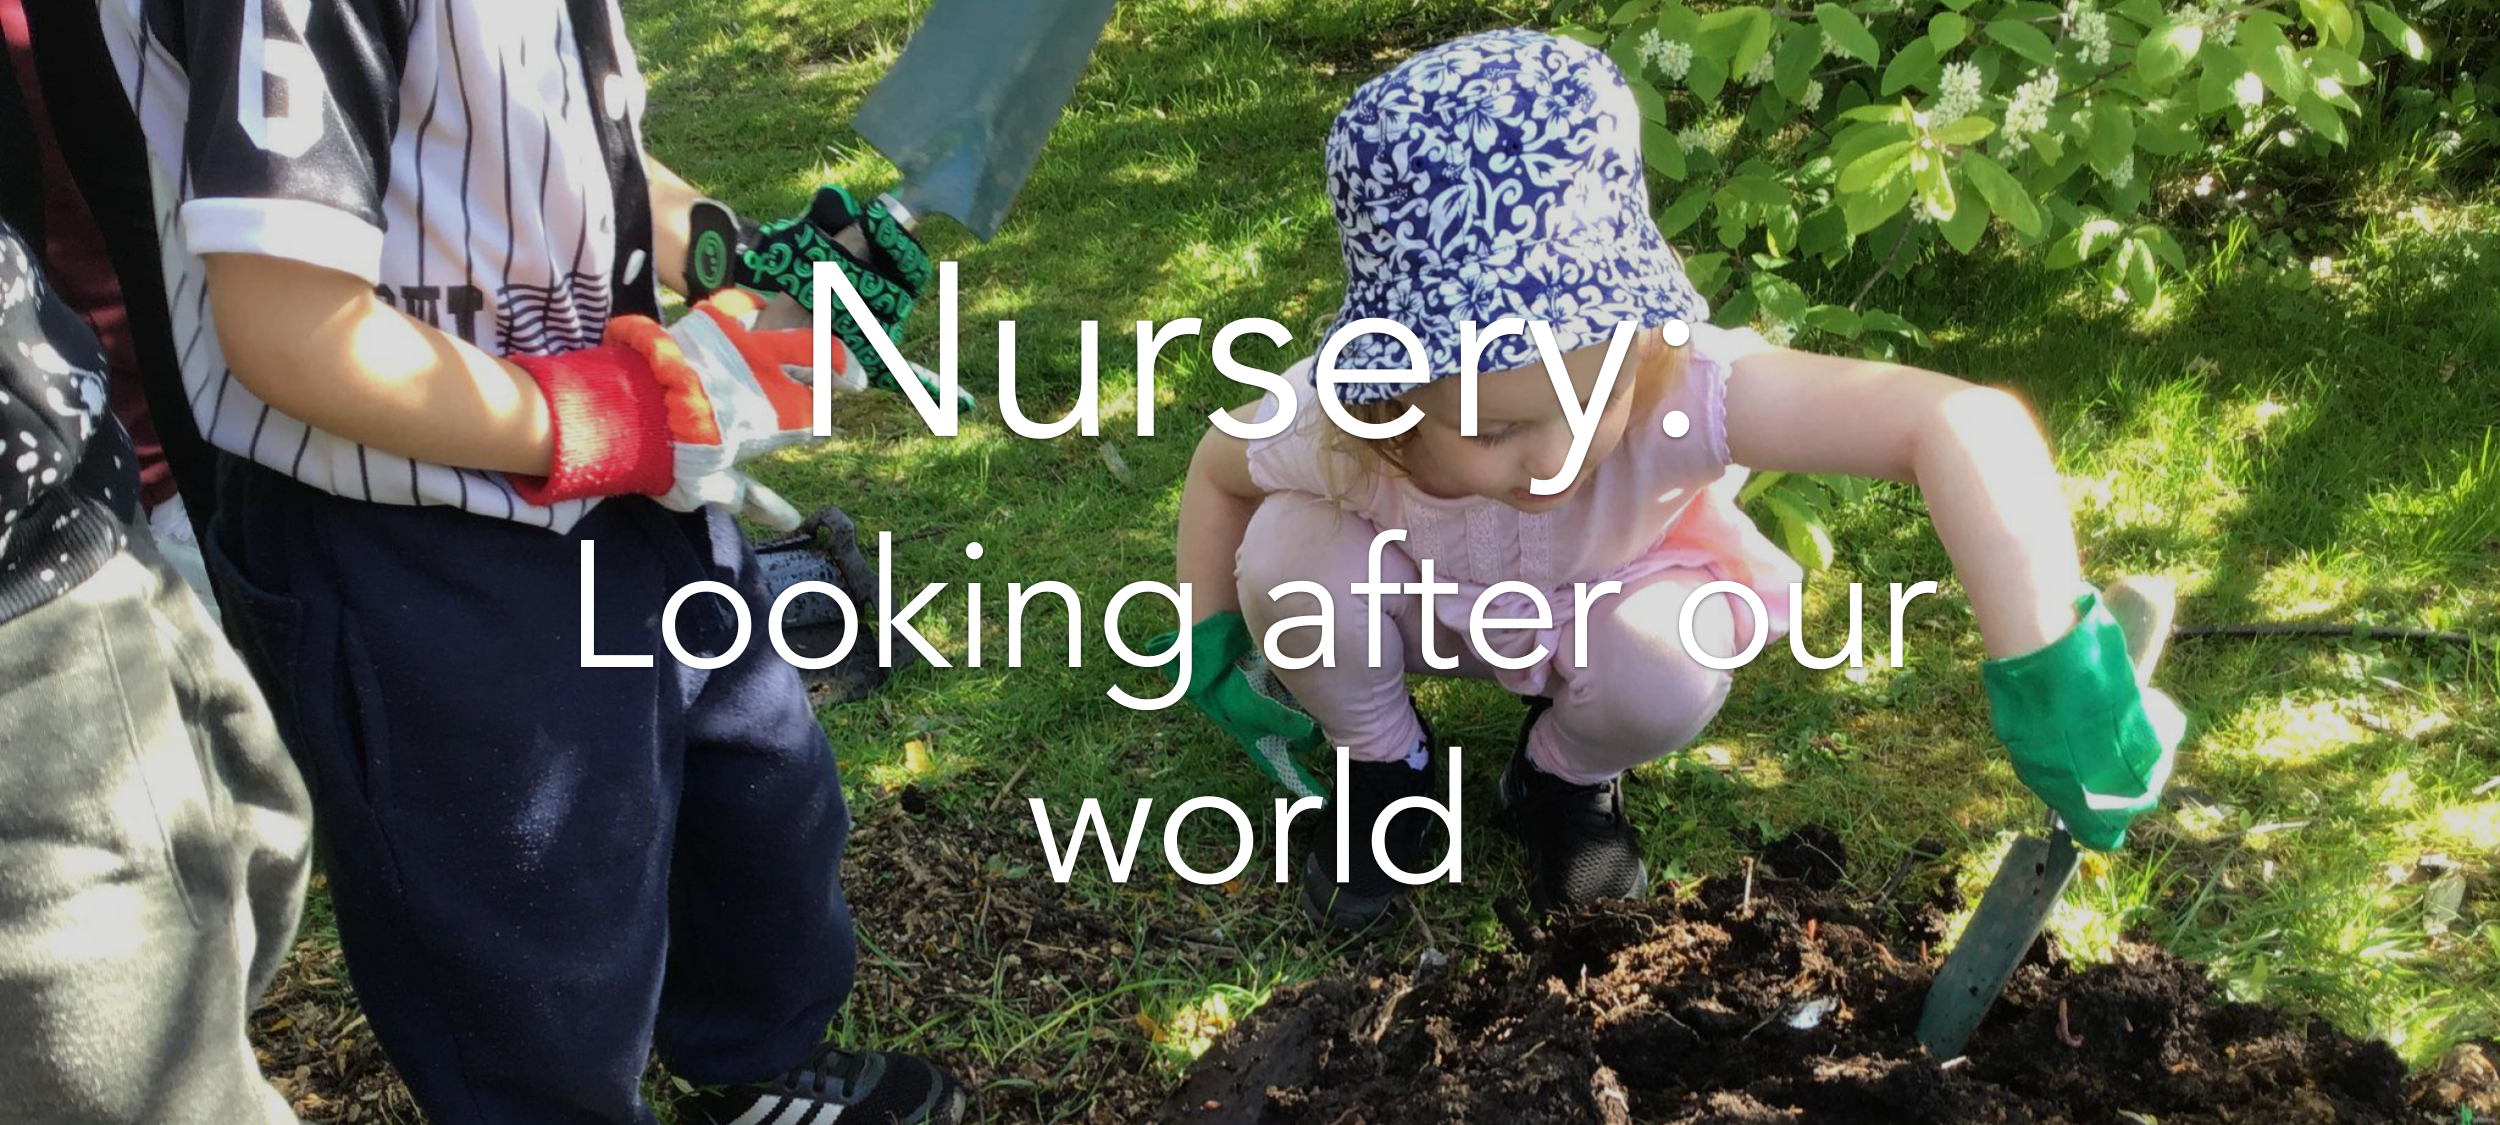 Nursery: Looking After Our World